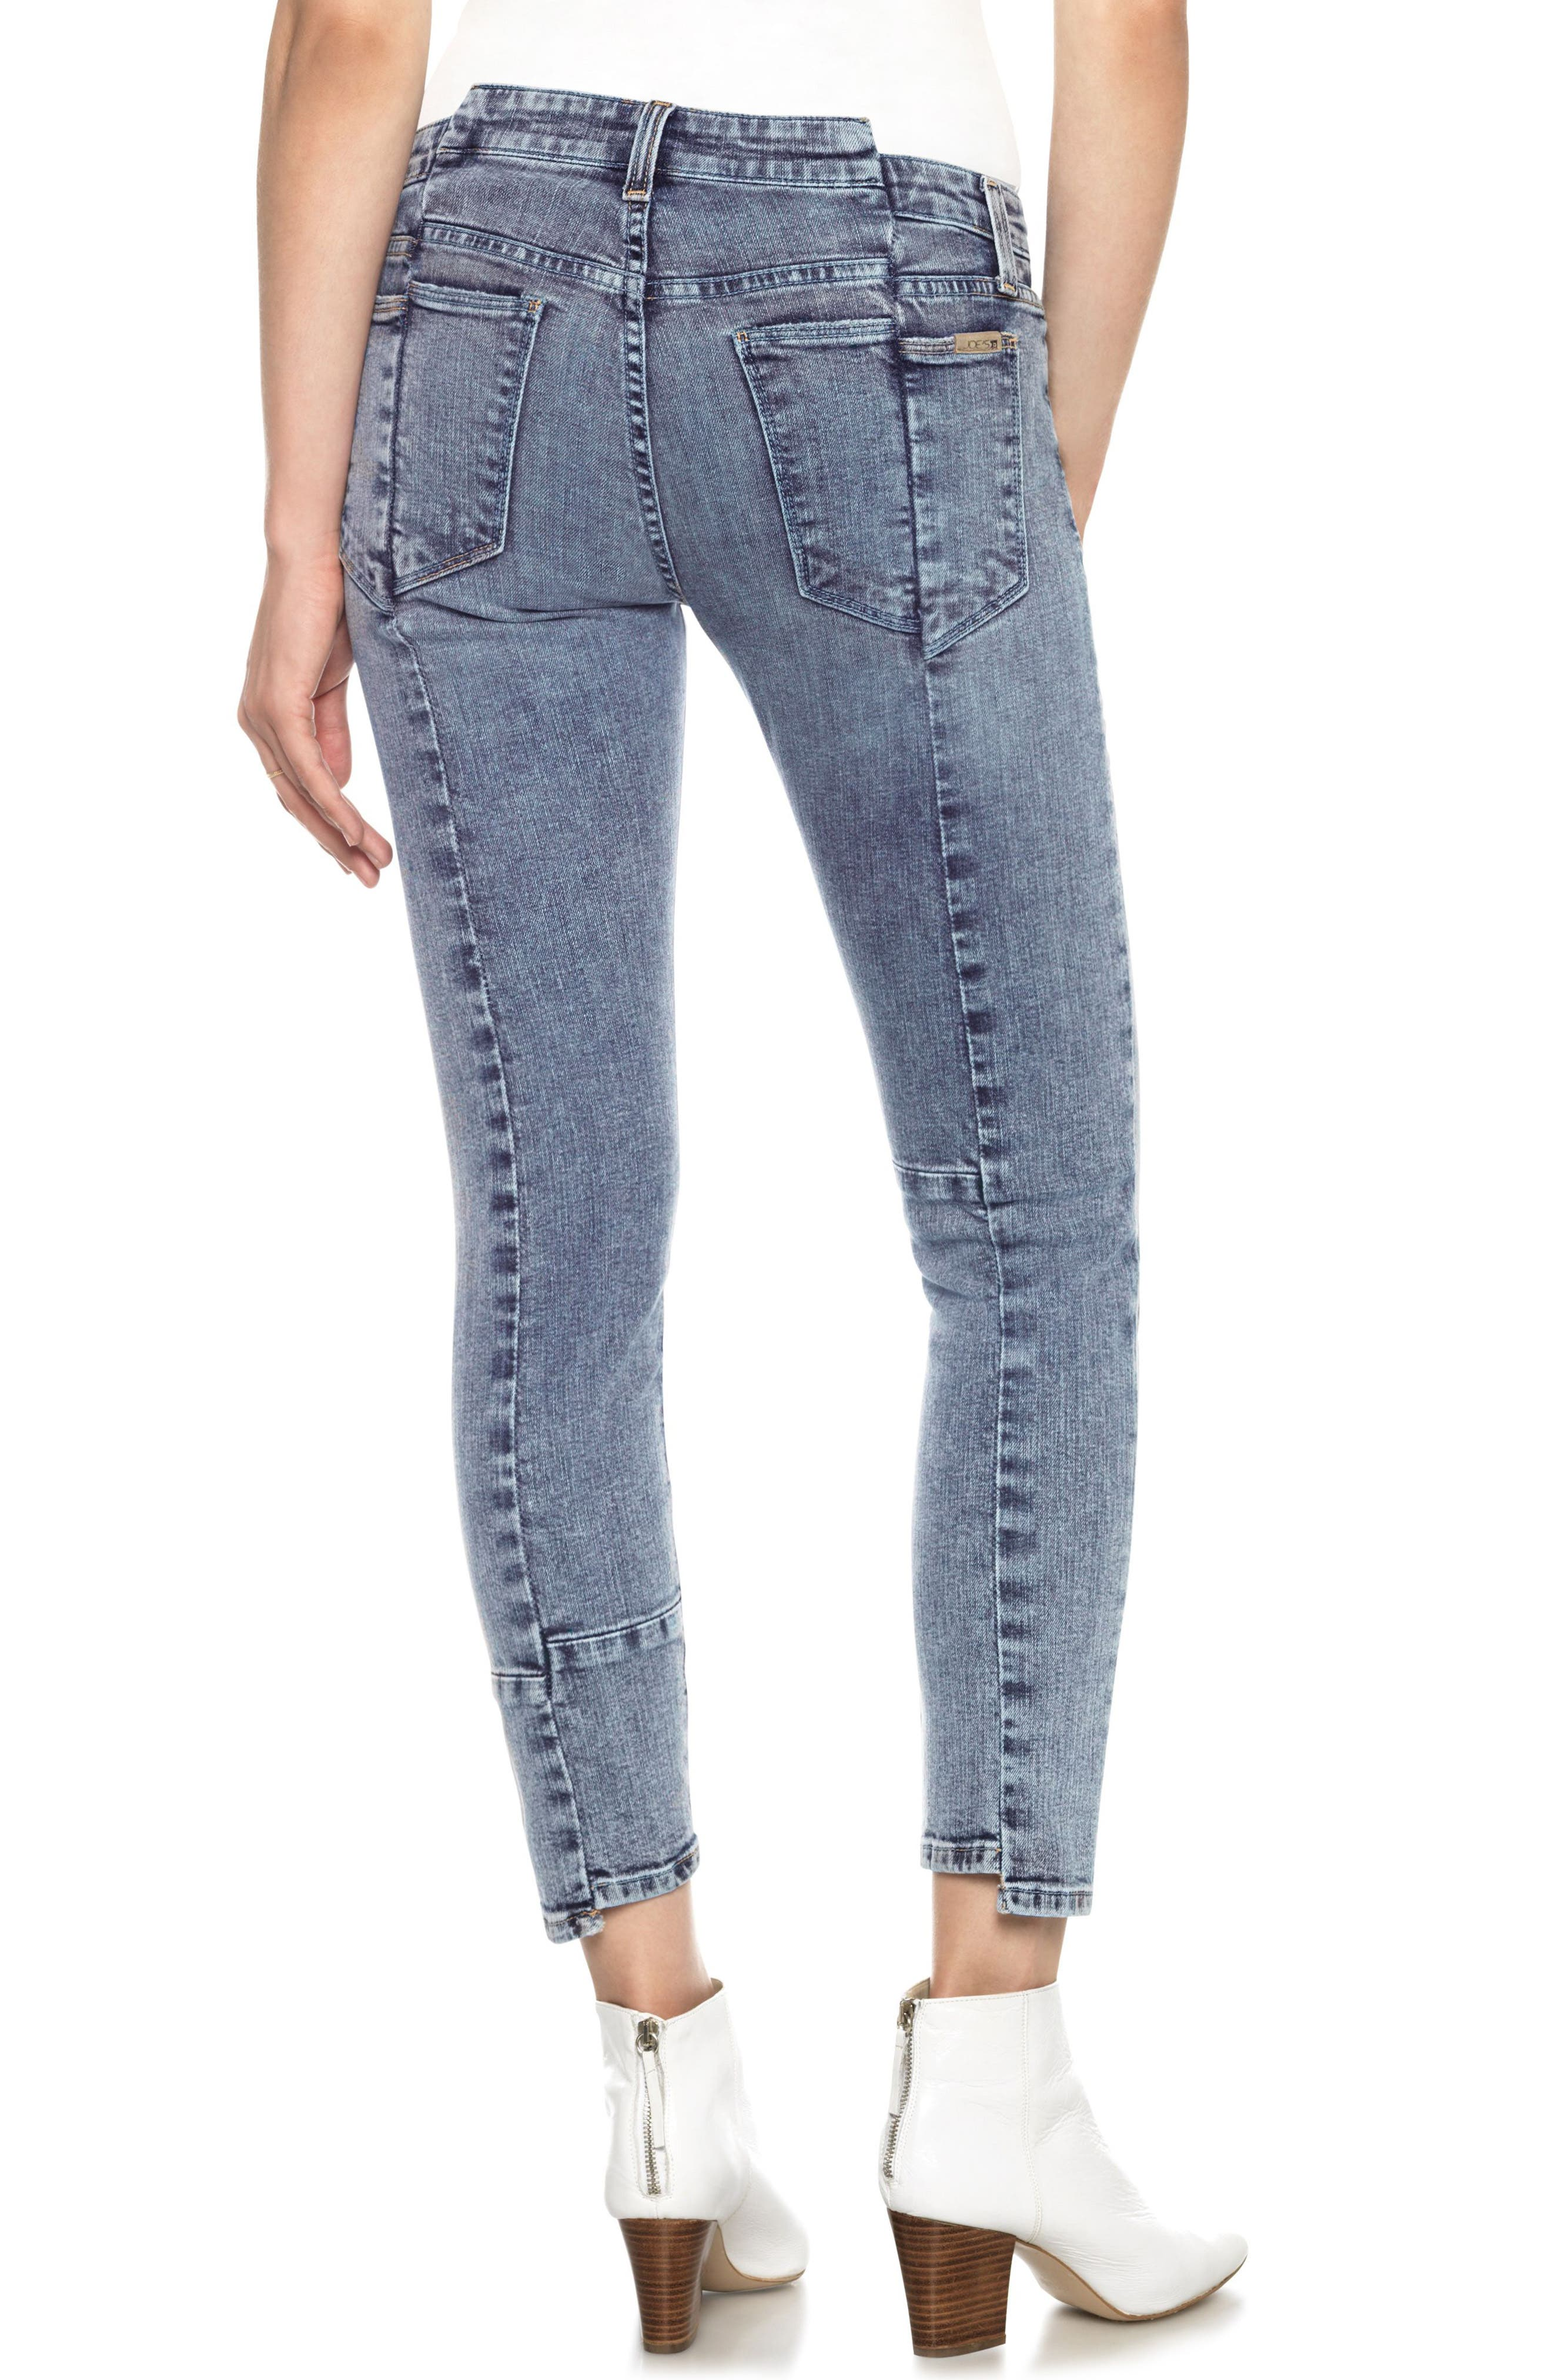 Smith Skinny Ankle Jeans,                             Alternate thumbnail 2, color,                             010